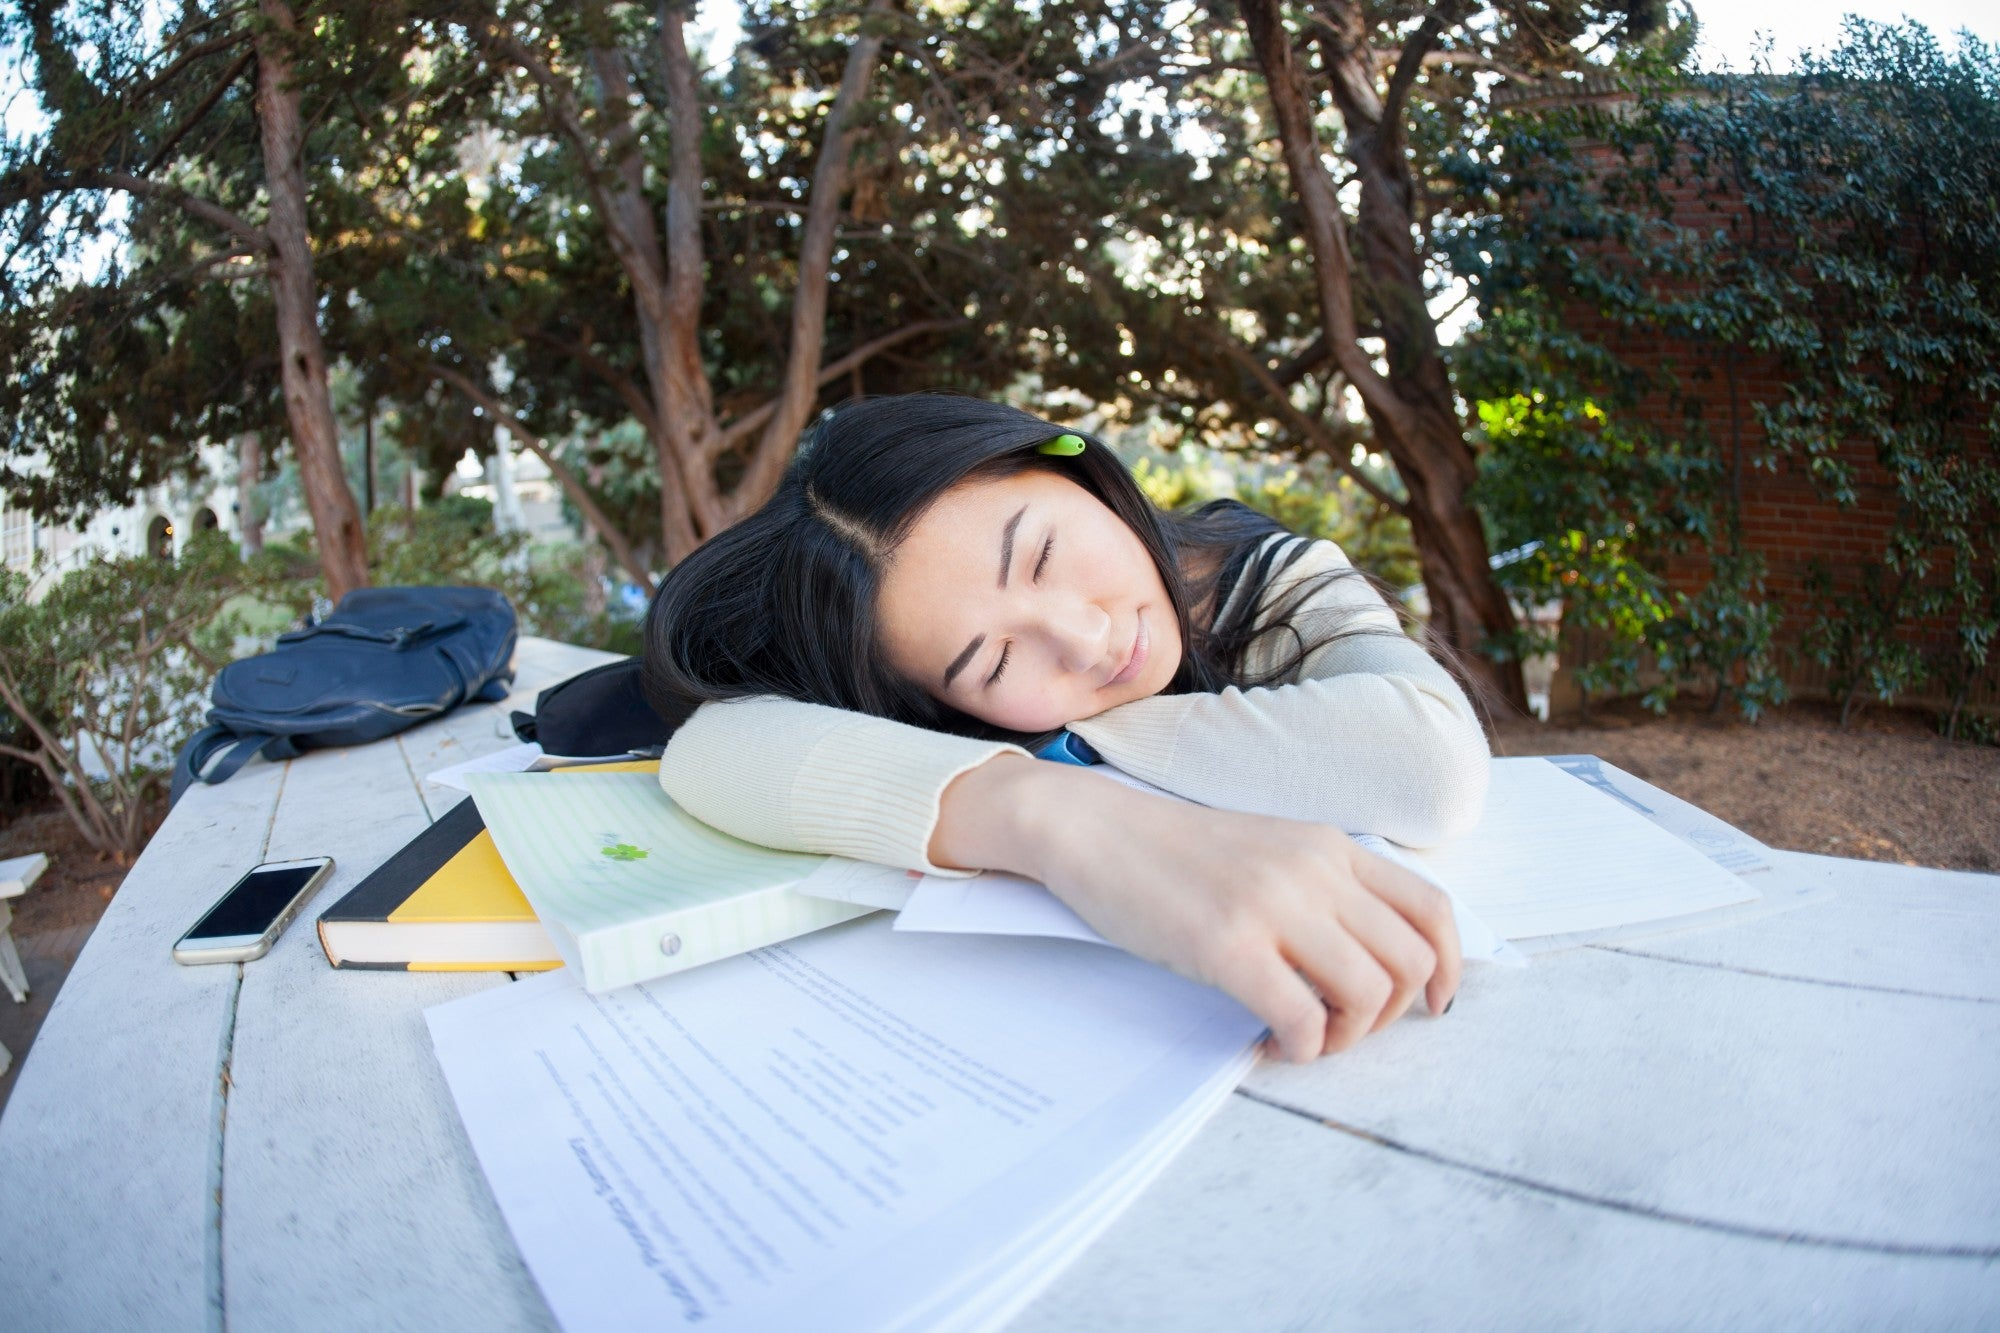 No More Z's During Class: 9 Useful Tips for Tired Students in College